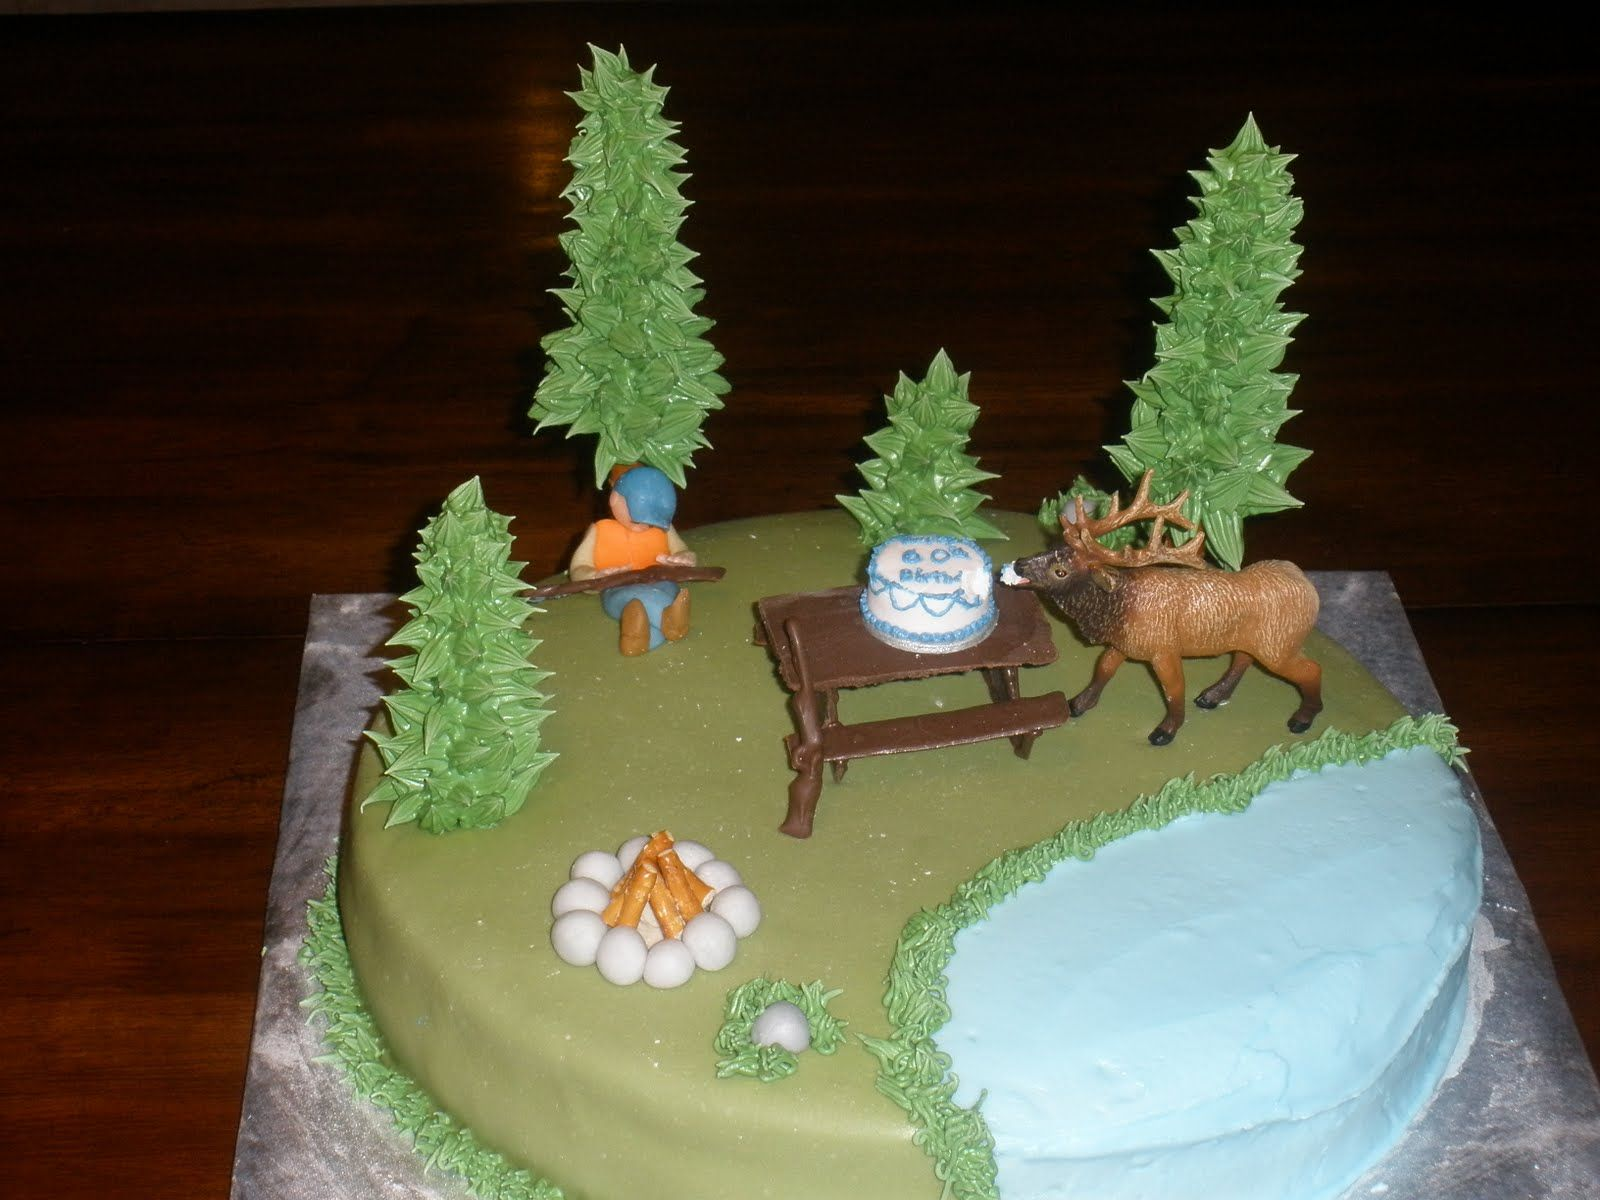 Huntingthemed grooms cakes lovetoknow Pick out a hunting grooms